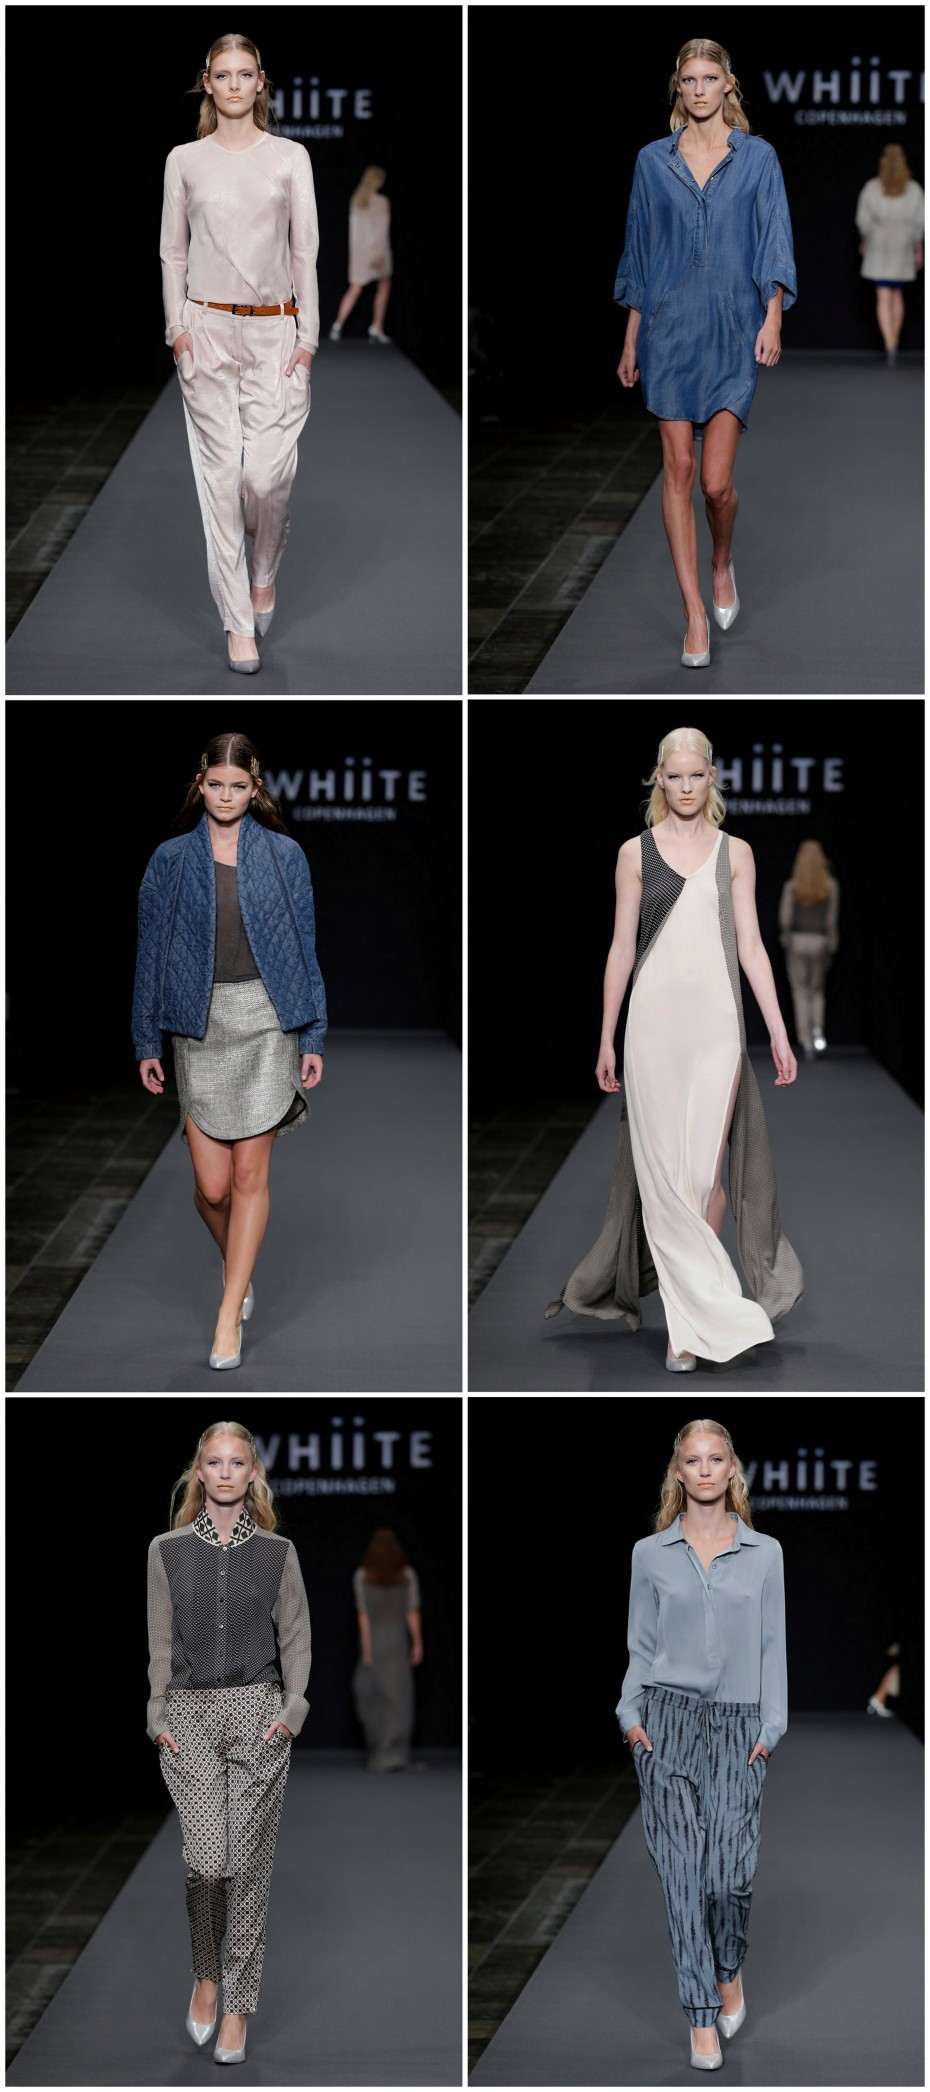 whiite ss14